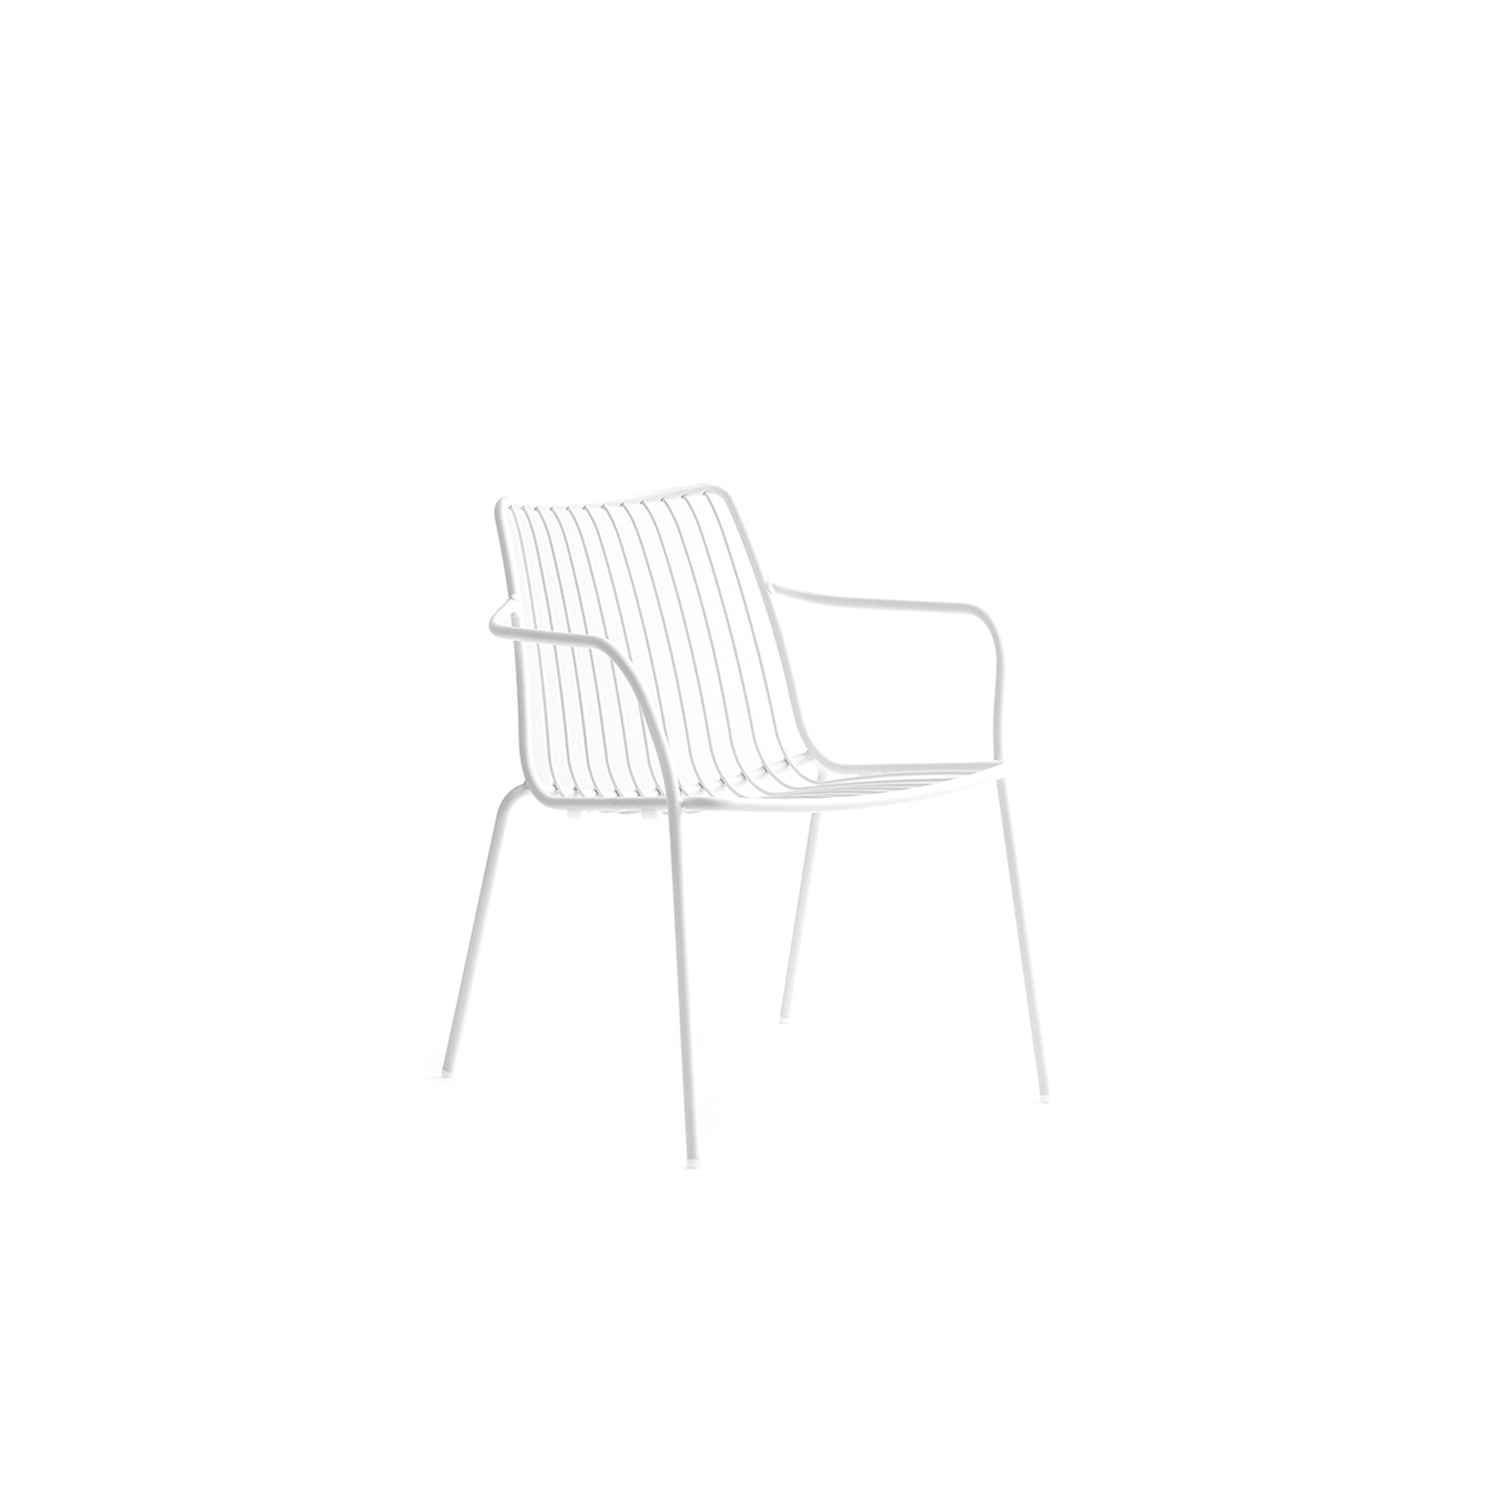 Nolita Lounge Chair - Nolita is a family of outdoor seatings which recalls the origins of a historic course started by Mario Pedrali in 1963 with his first metal garden chairs. Lounge armchair with steel tube frame powder coated for outdoor use.